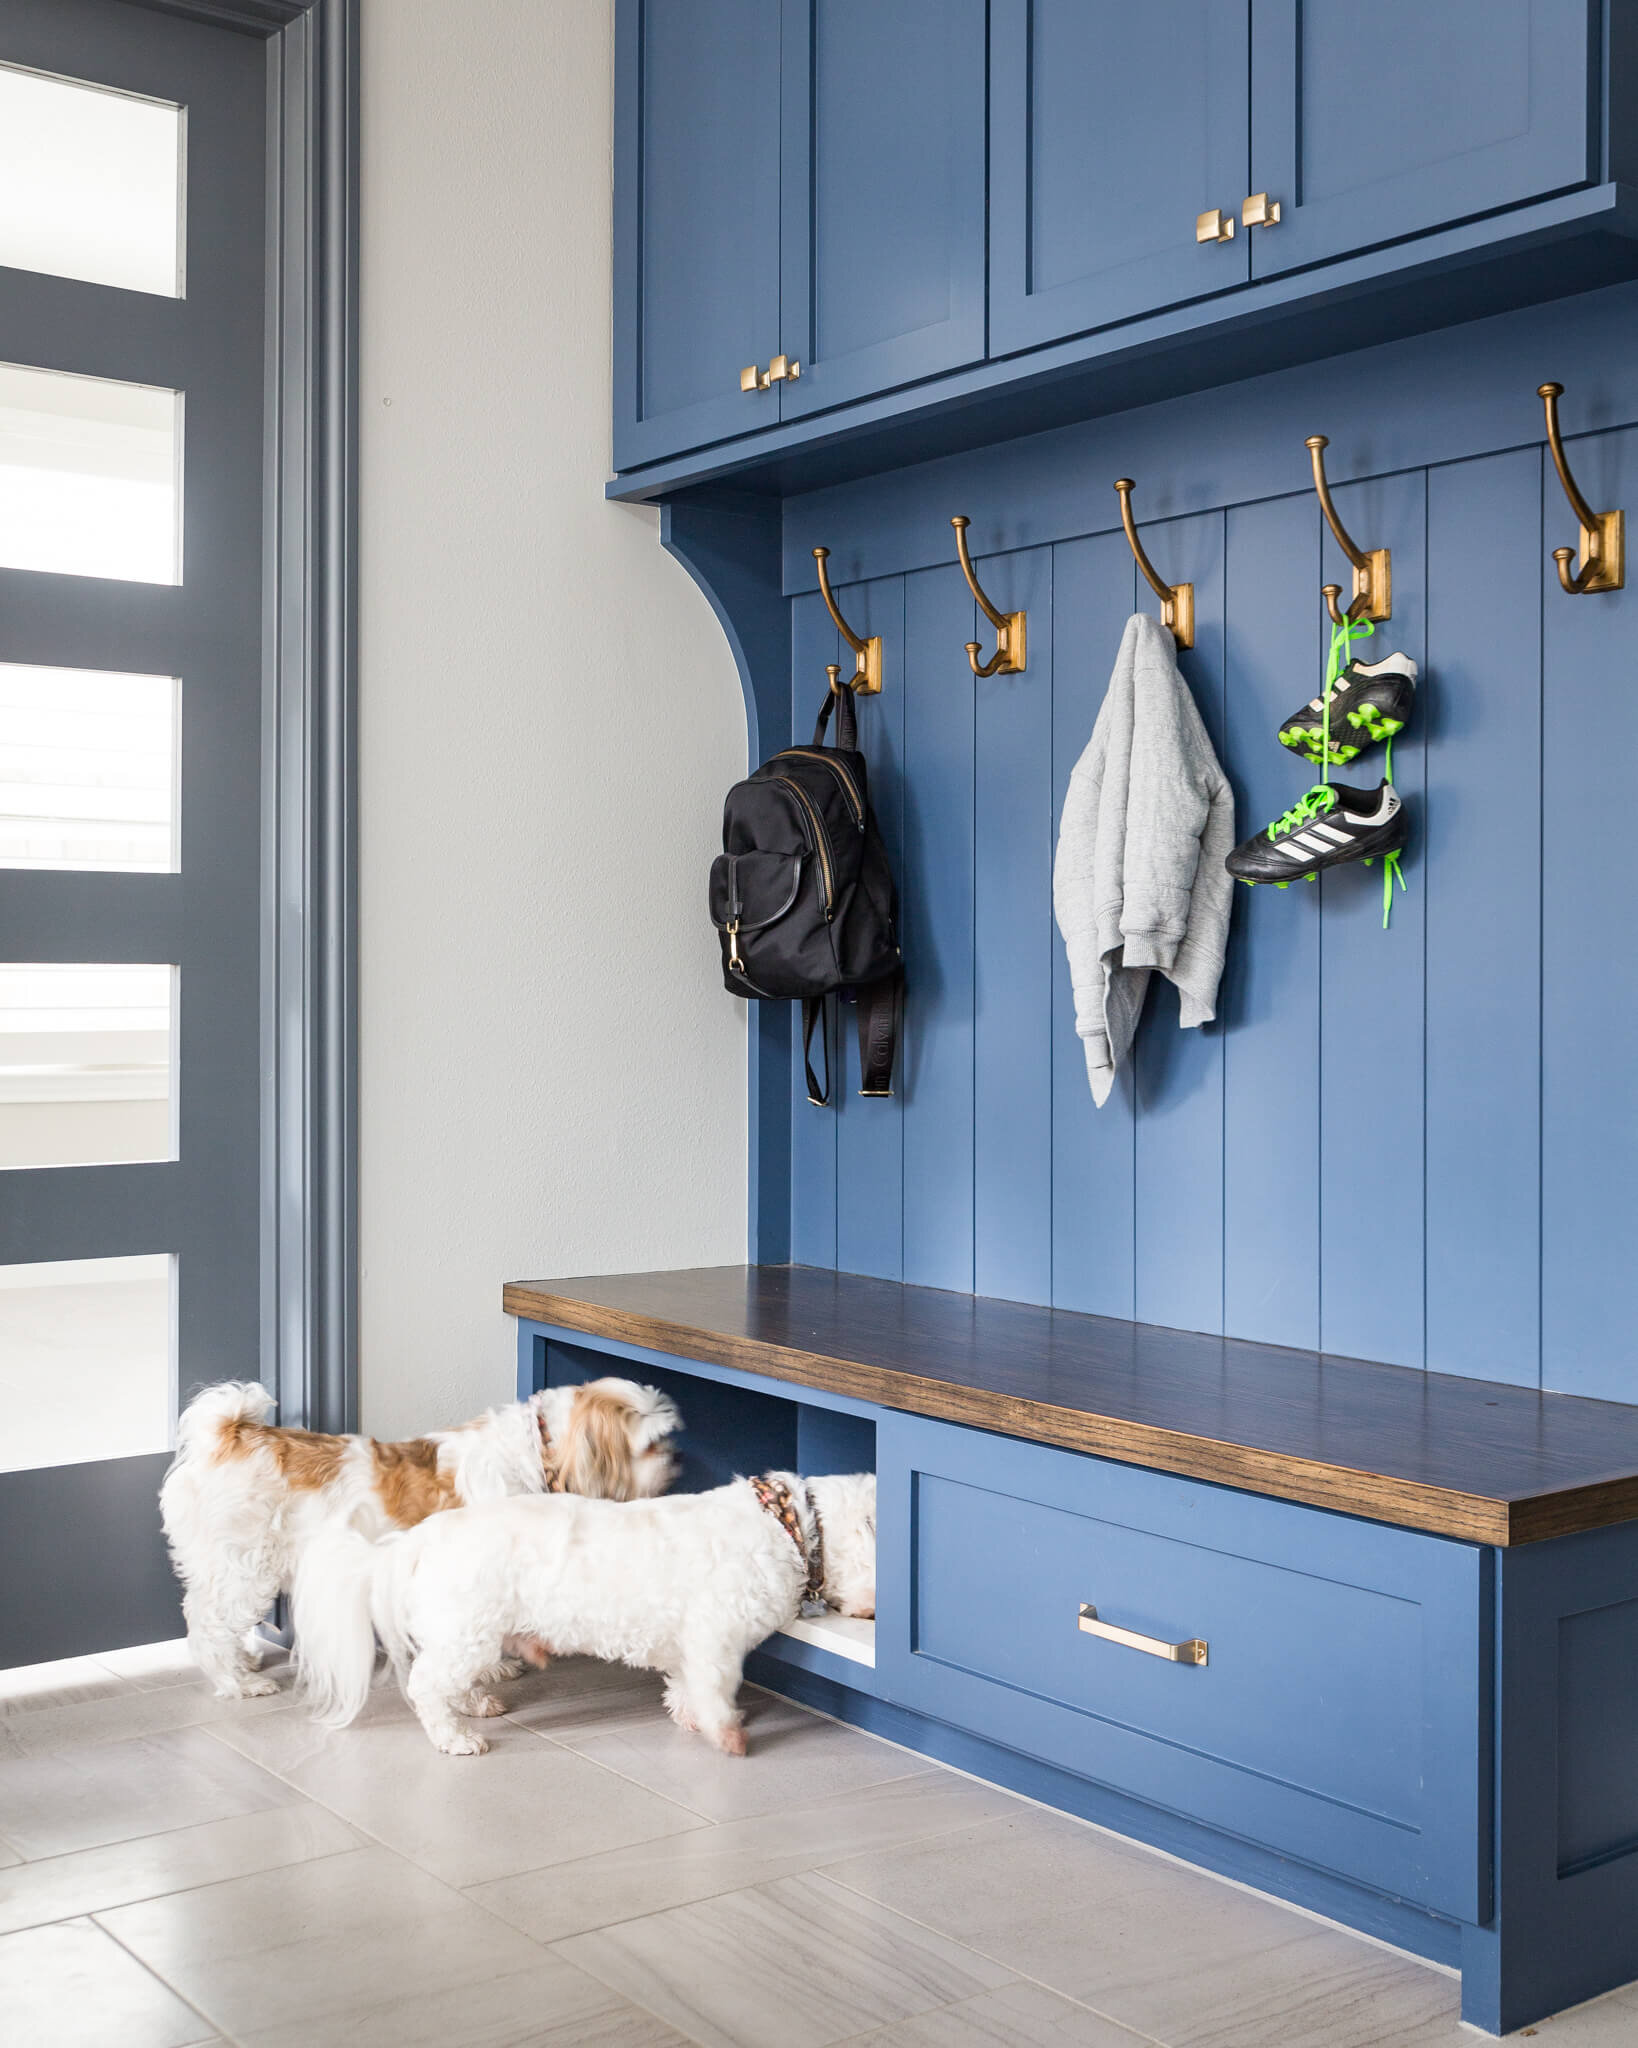 This mud room bench looks great in a sharp blue paint color accented with brass hardware. Carla Aston, Designer | Colleen Scott, Photographer #paintcolors #choosingpaint #interiorpaintcolors